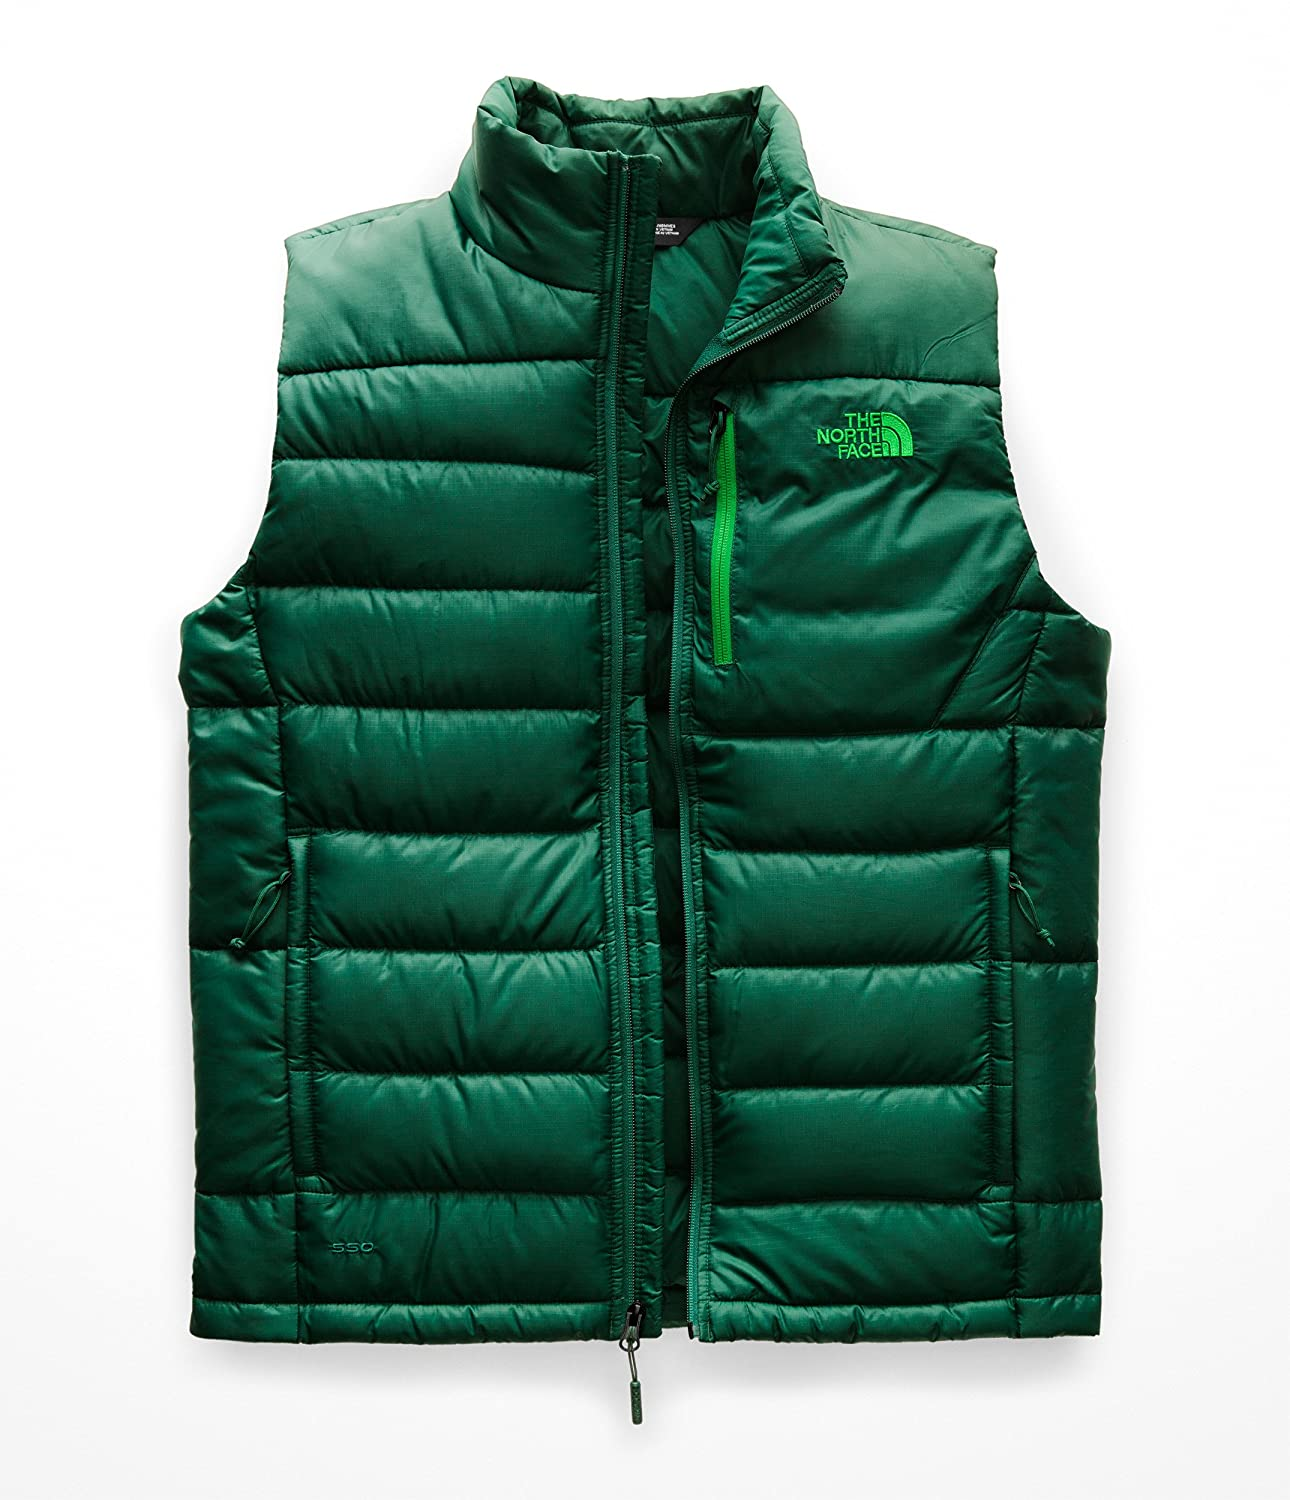 1302a6ac4733 The North Face Men s Aconcagua Vest at Amazon Men s Clothing store